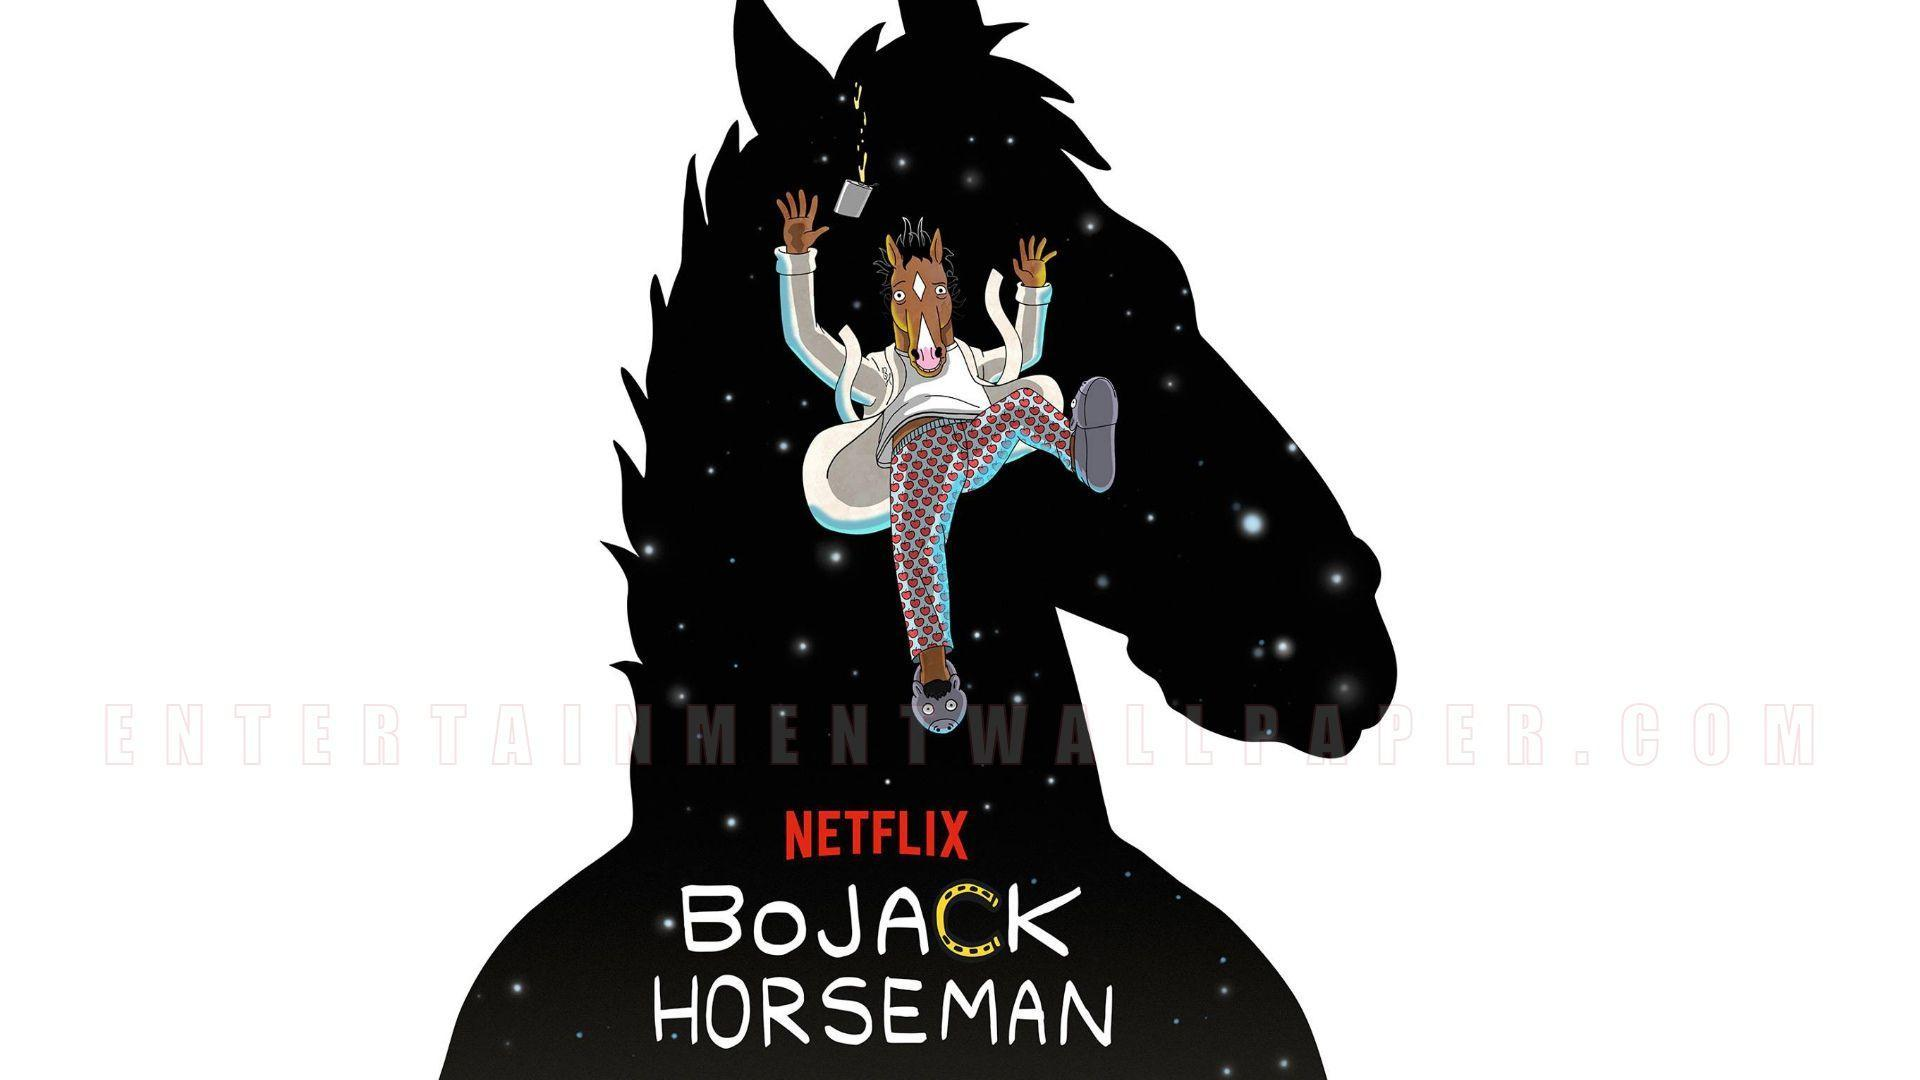 BoJack Horseman Wallpapers